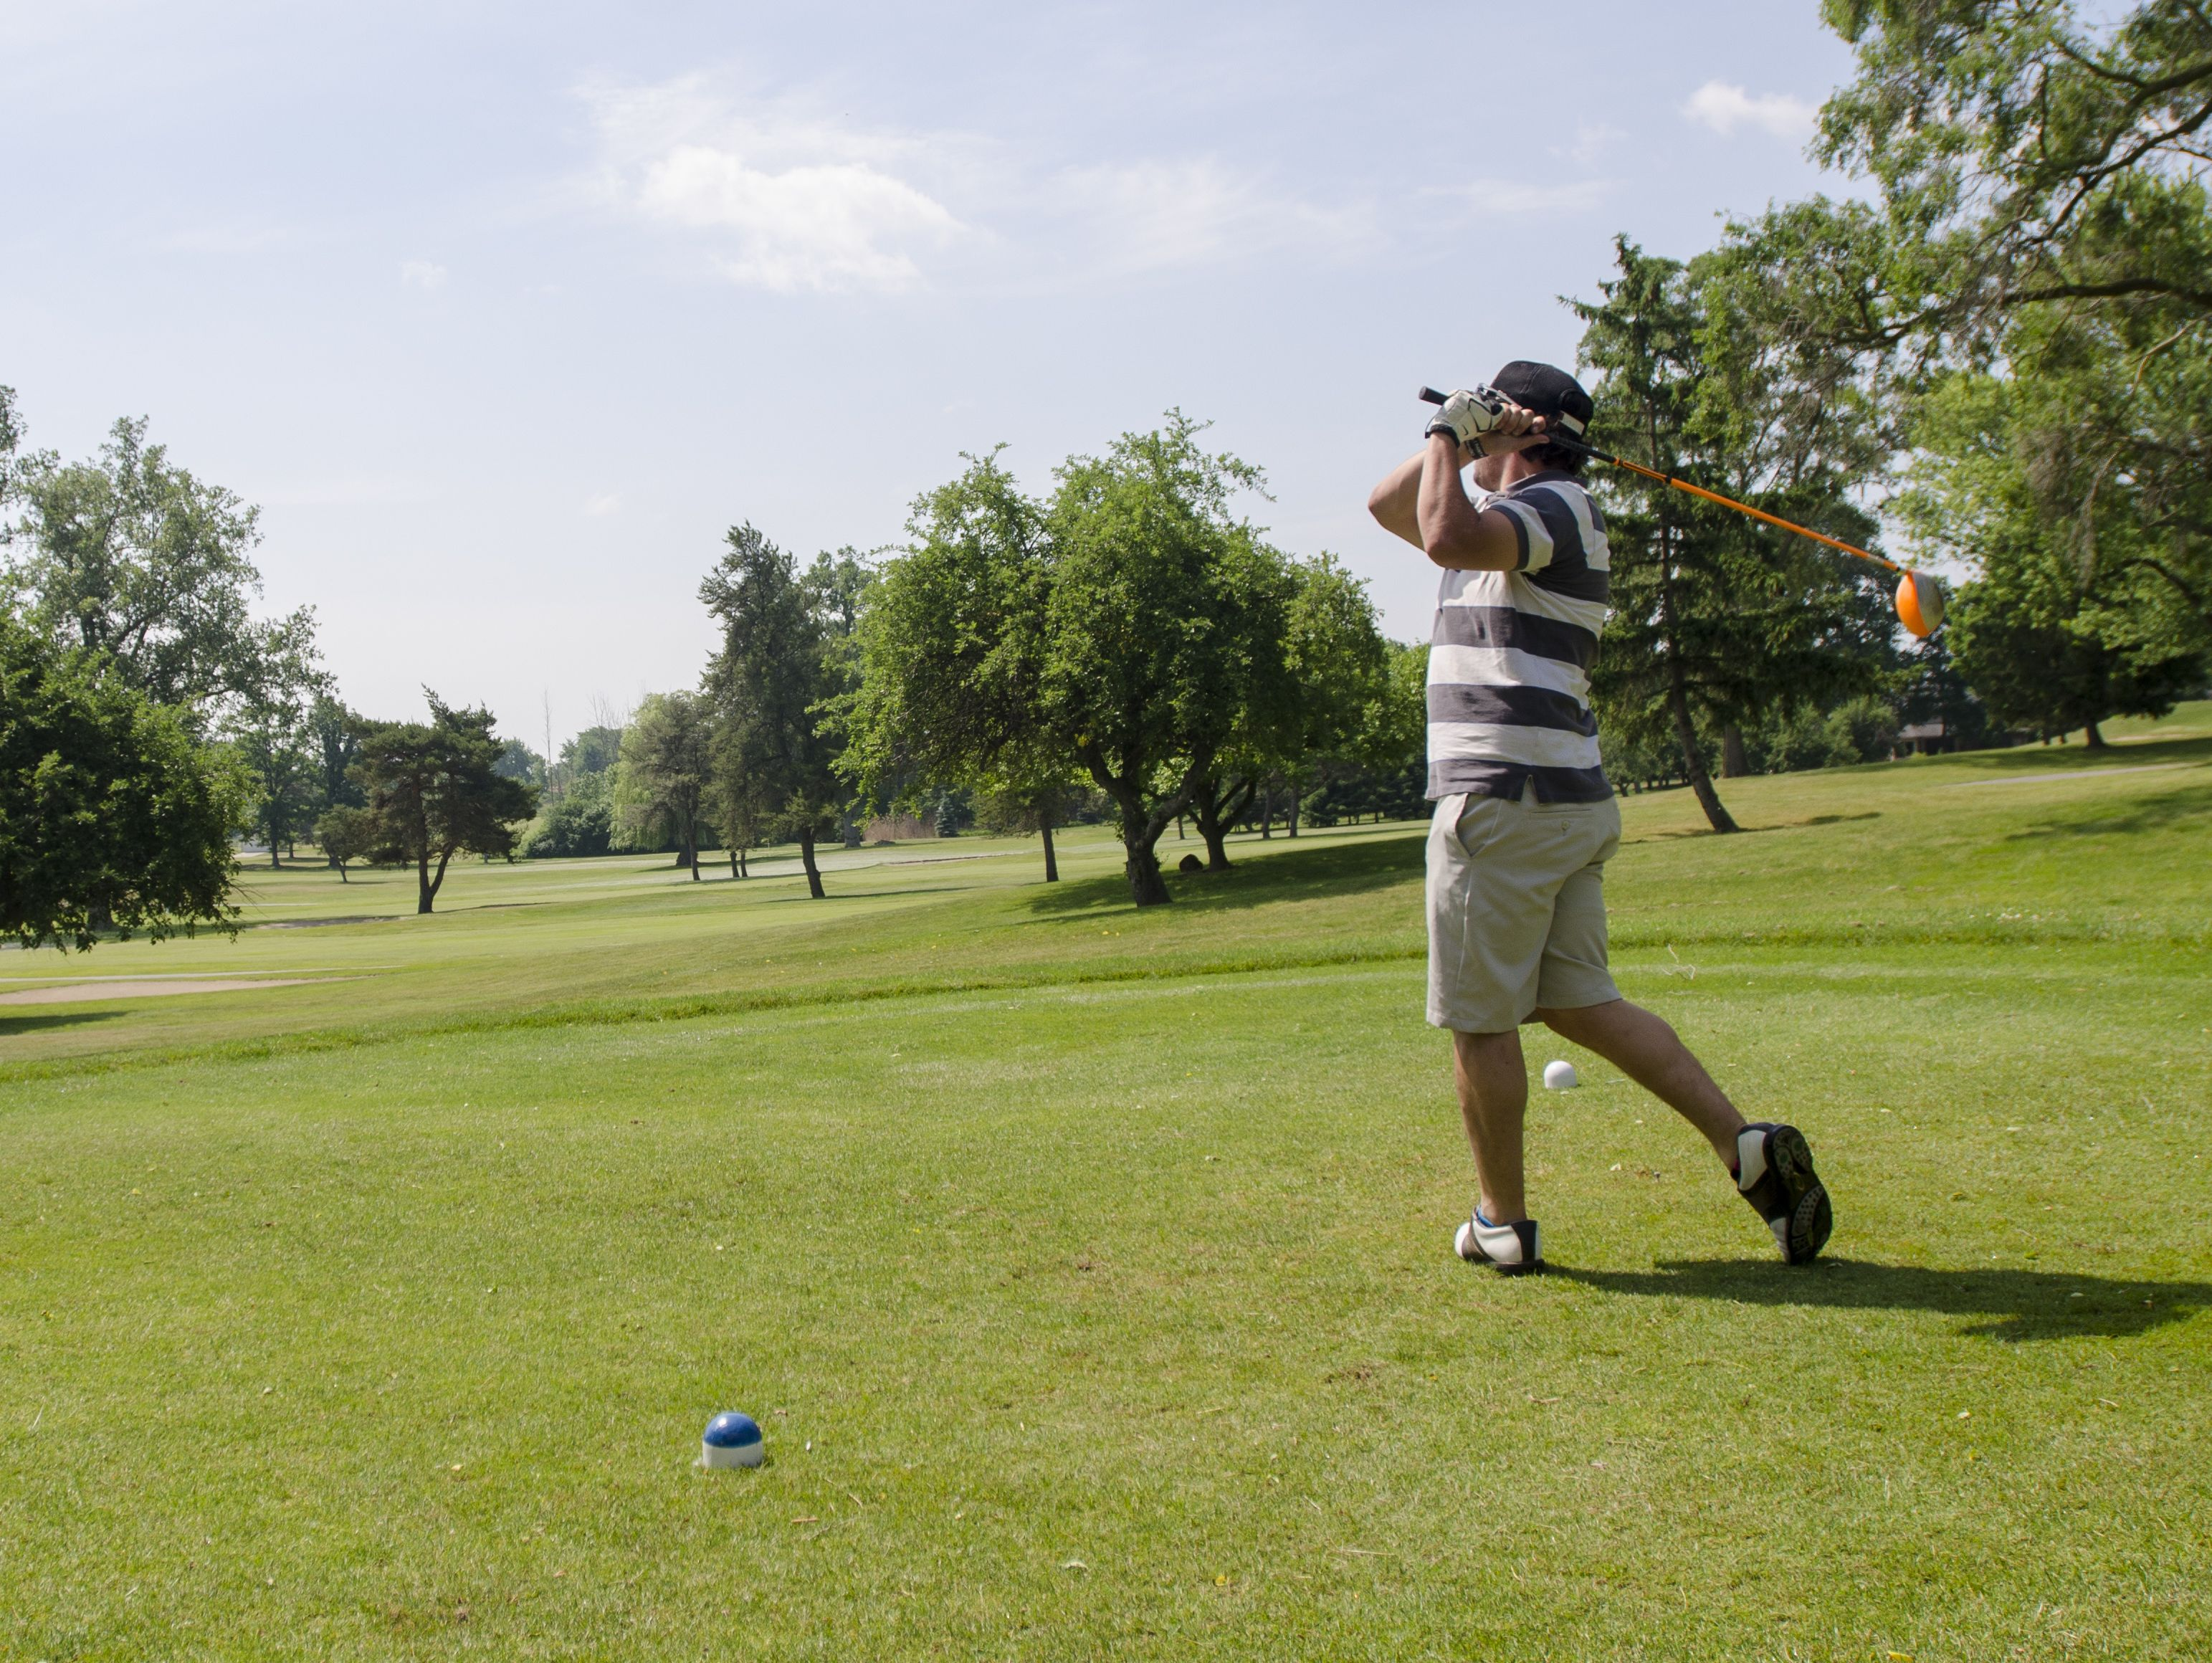 Caleb Mireau, of St. Clair, tees off Monday, June 20, during the Lelito Legacy Golf Outing at St. Clair Golf Cub.